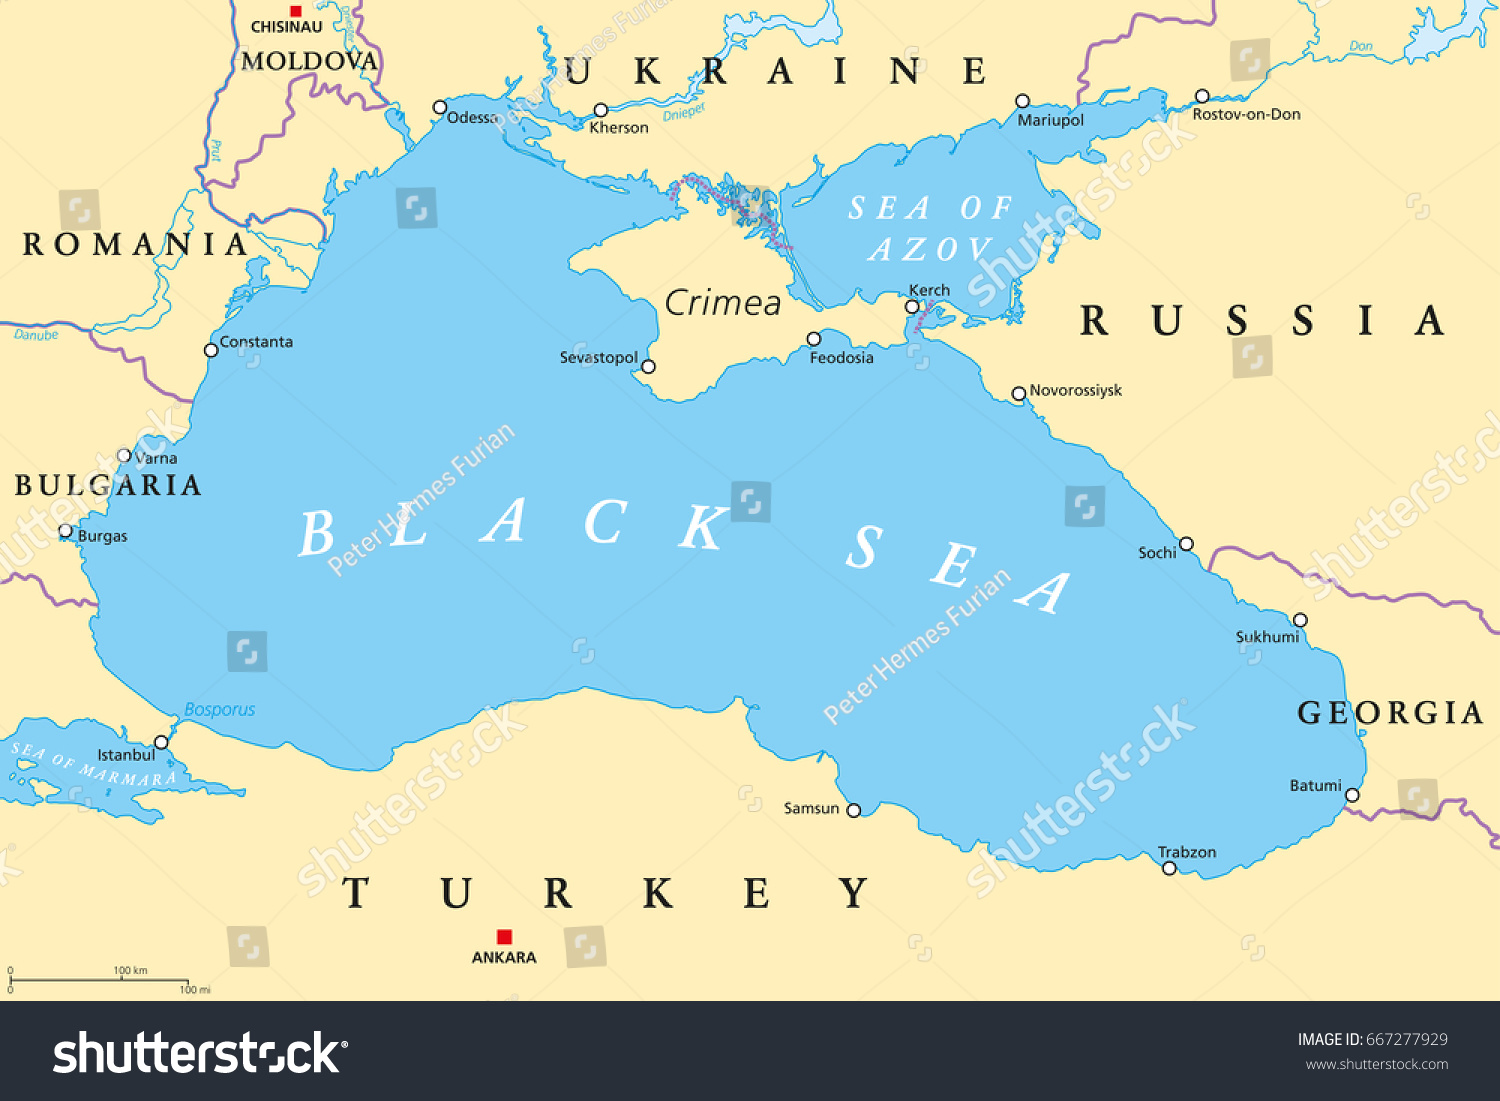 black sea and sea of azov region political map with capitals most important cities